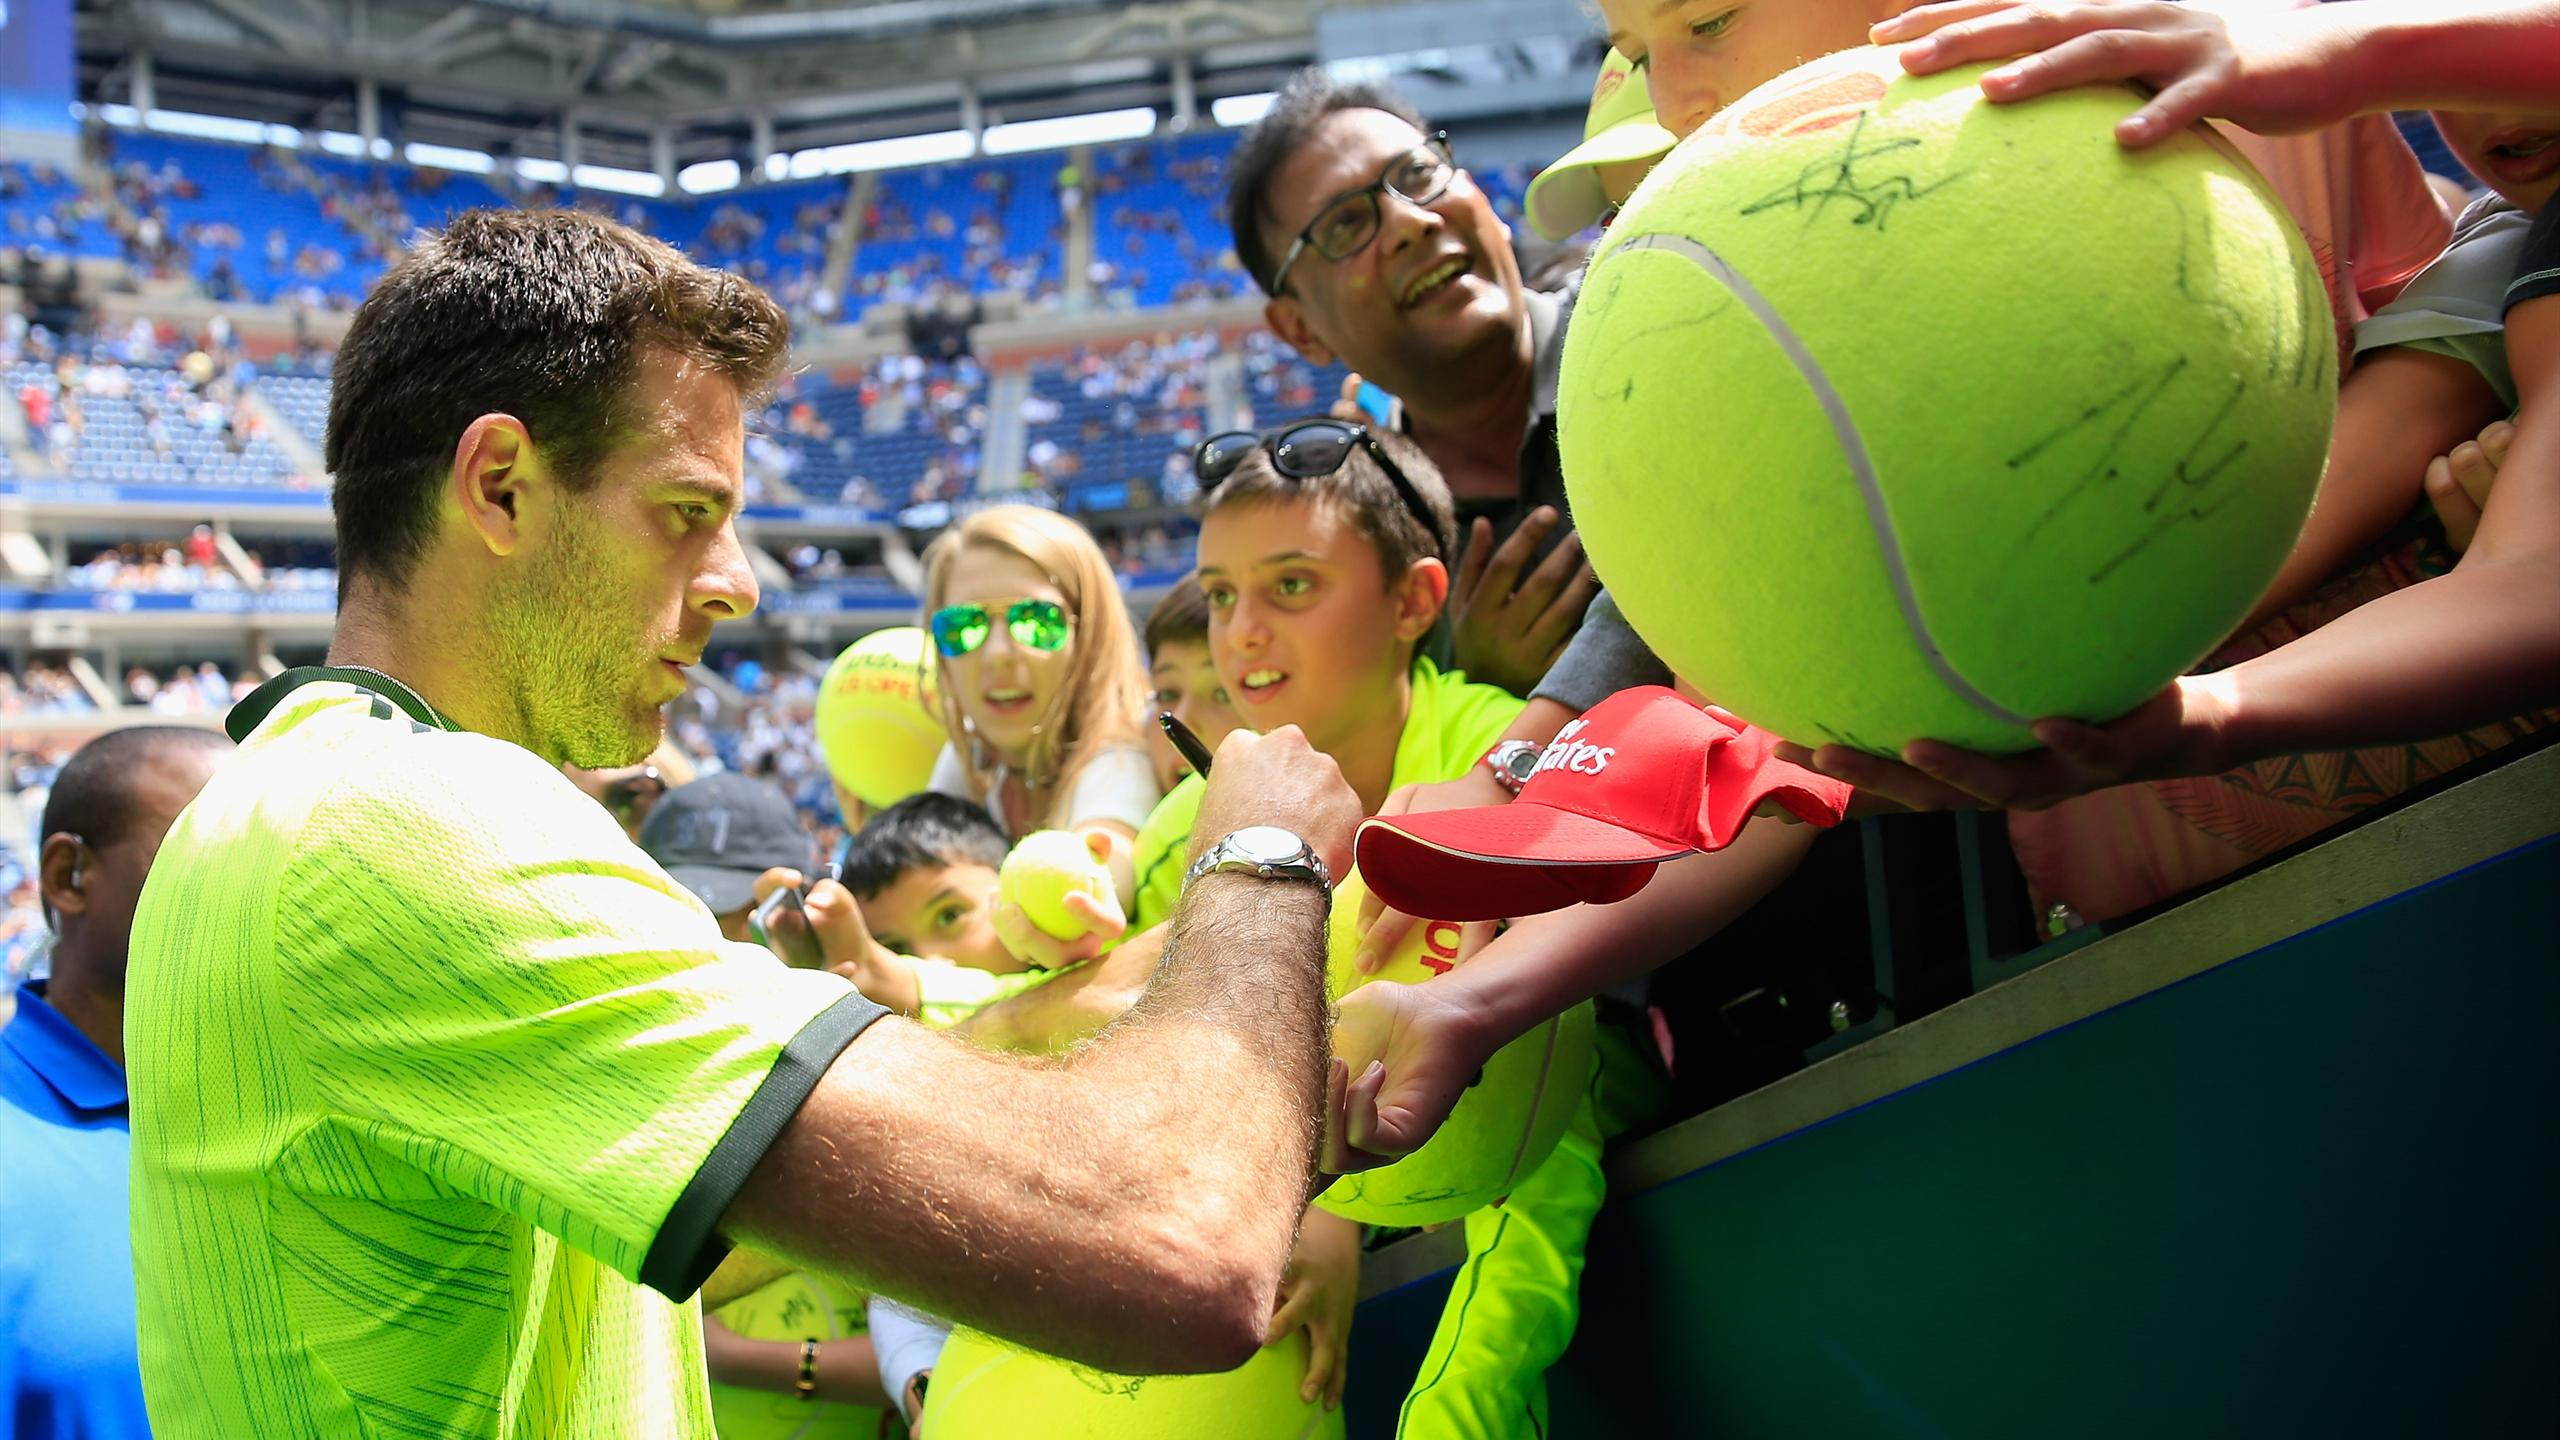 Juan Martín del Potro of Argentina signs his autograph for fans